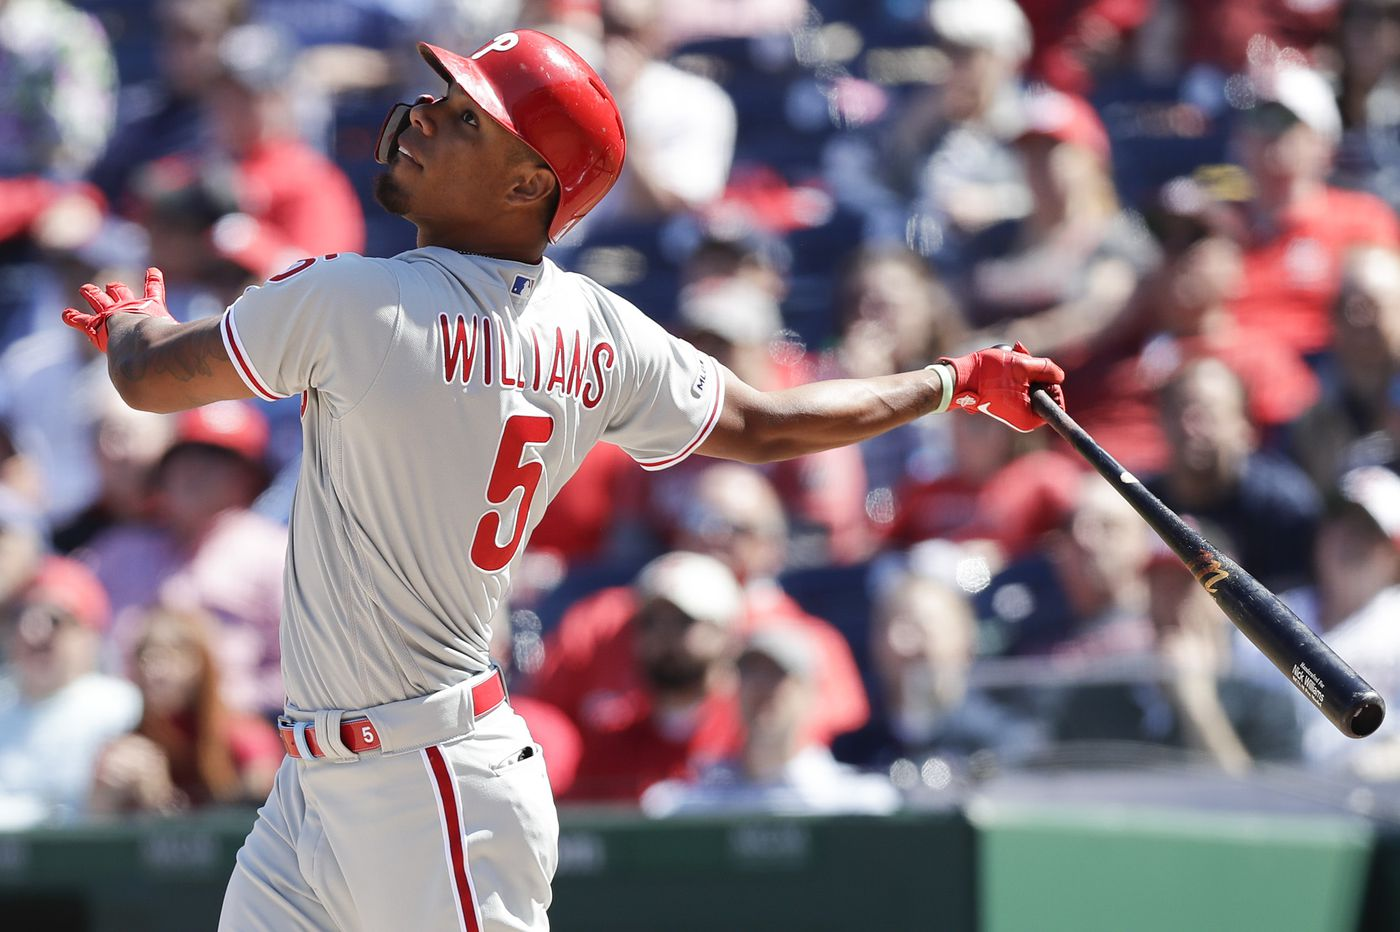 Nick Williams has the same role with the Phillies as last season, but not the same frustrations